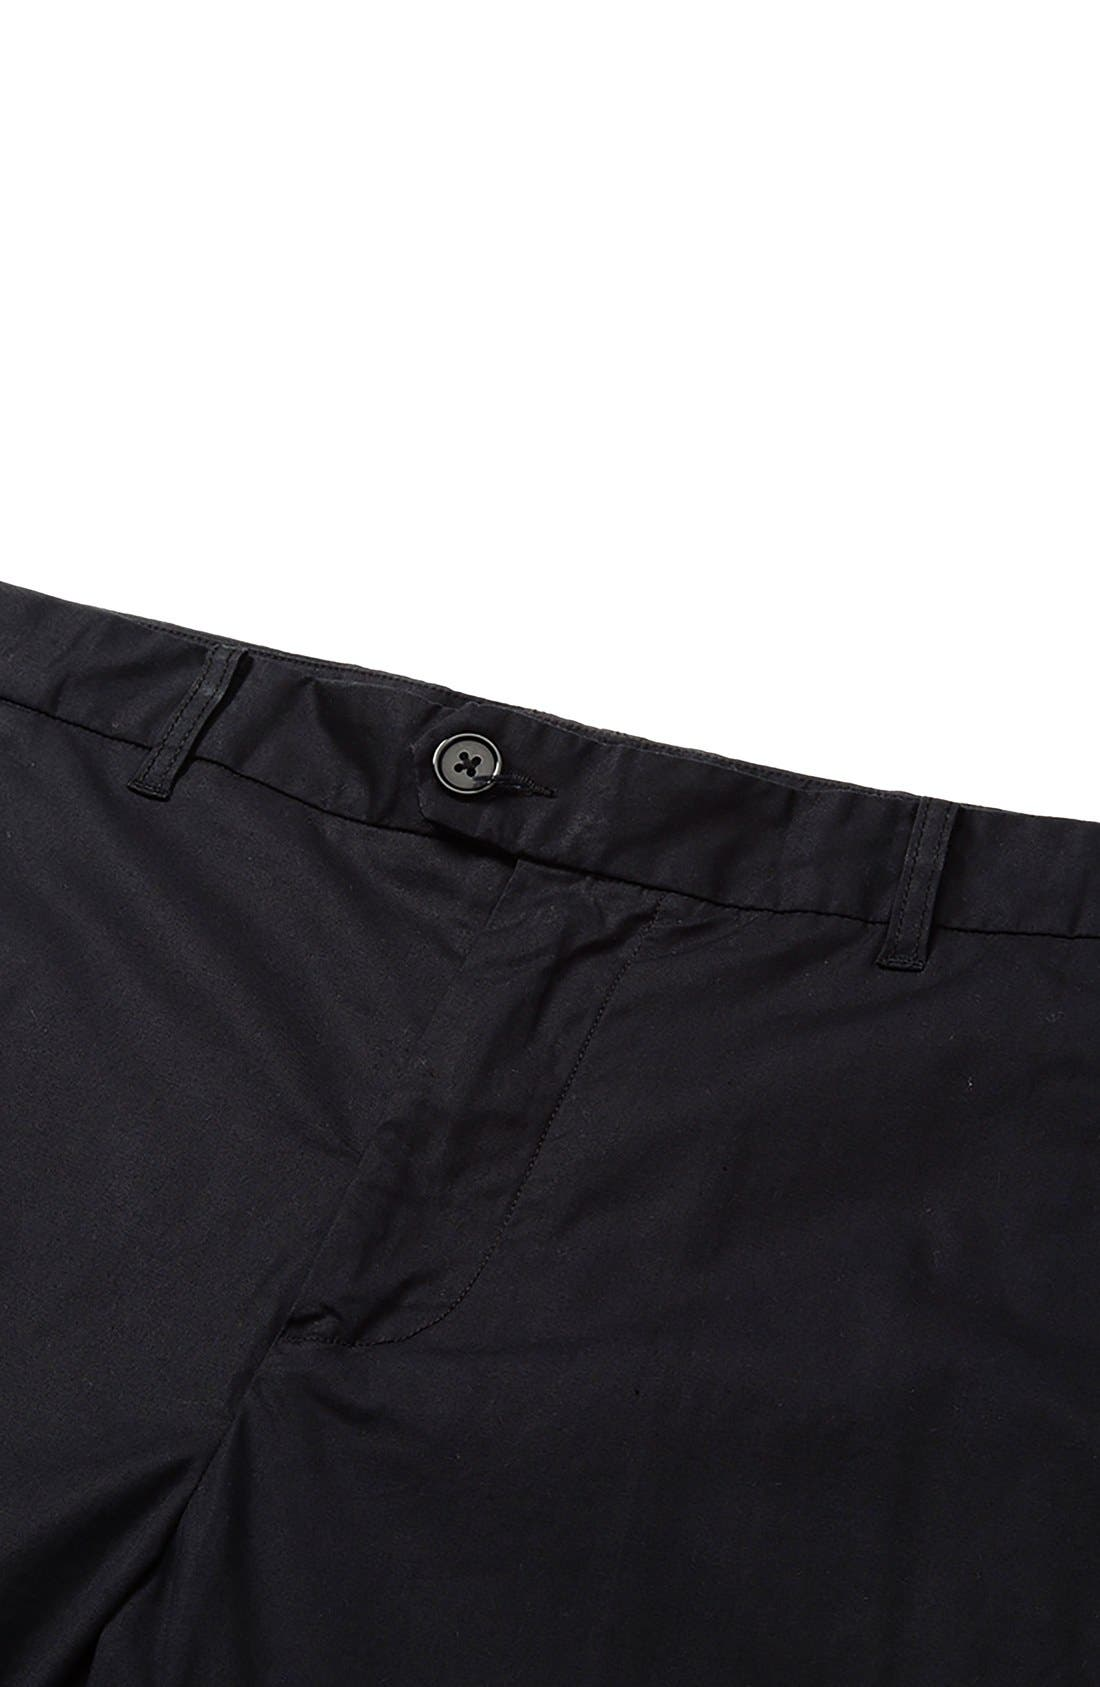 'Arroyo' Crop Stretch Chinos,                             Alternate thumbnail 4, color,                             001